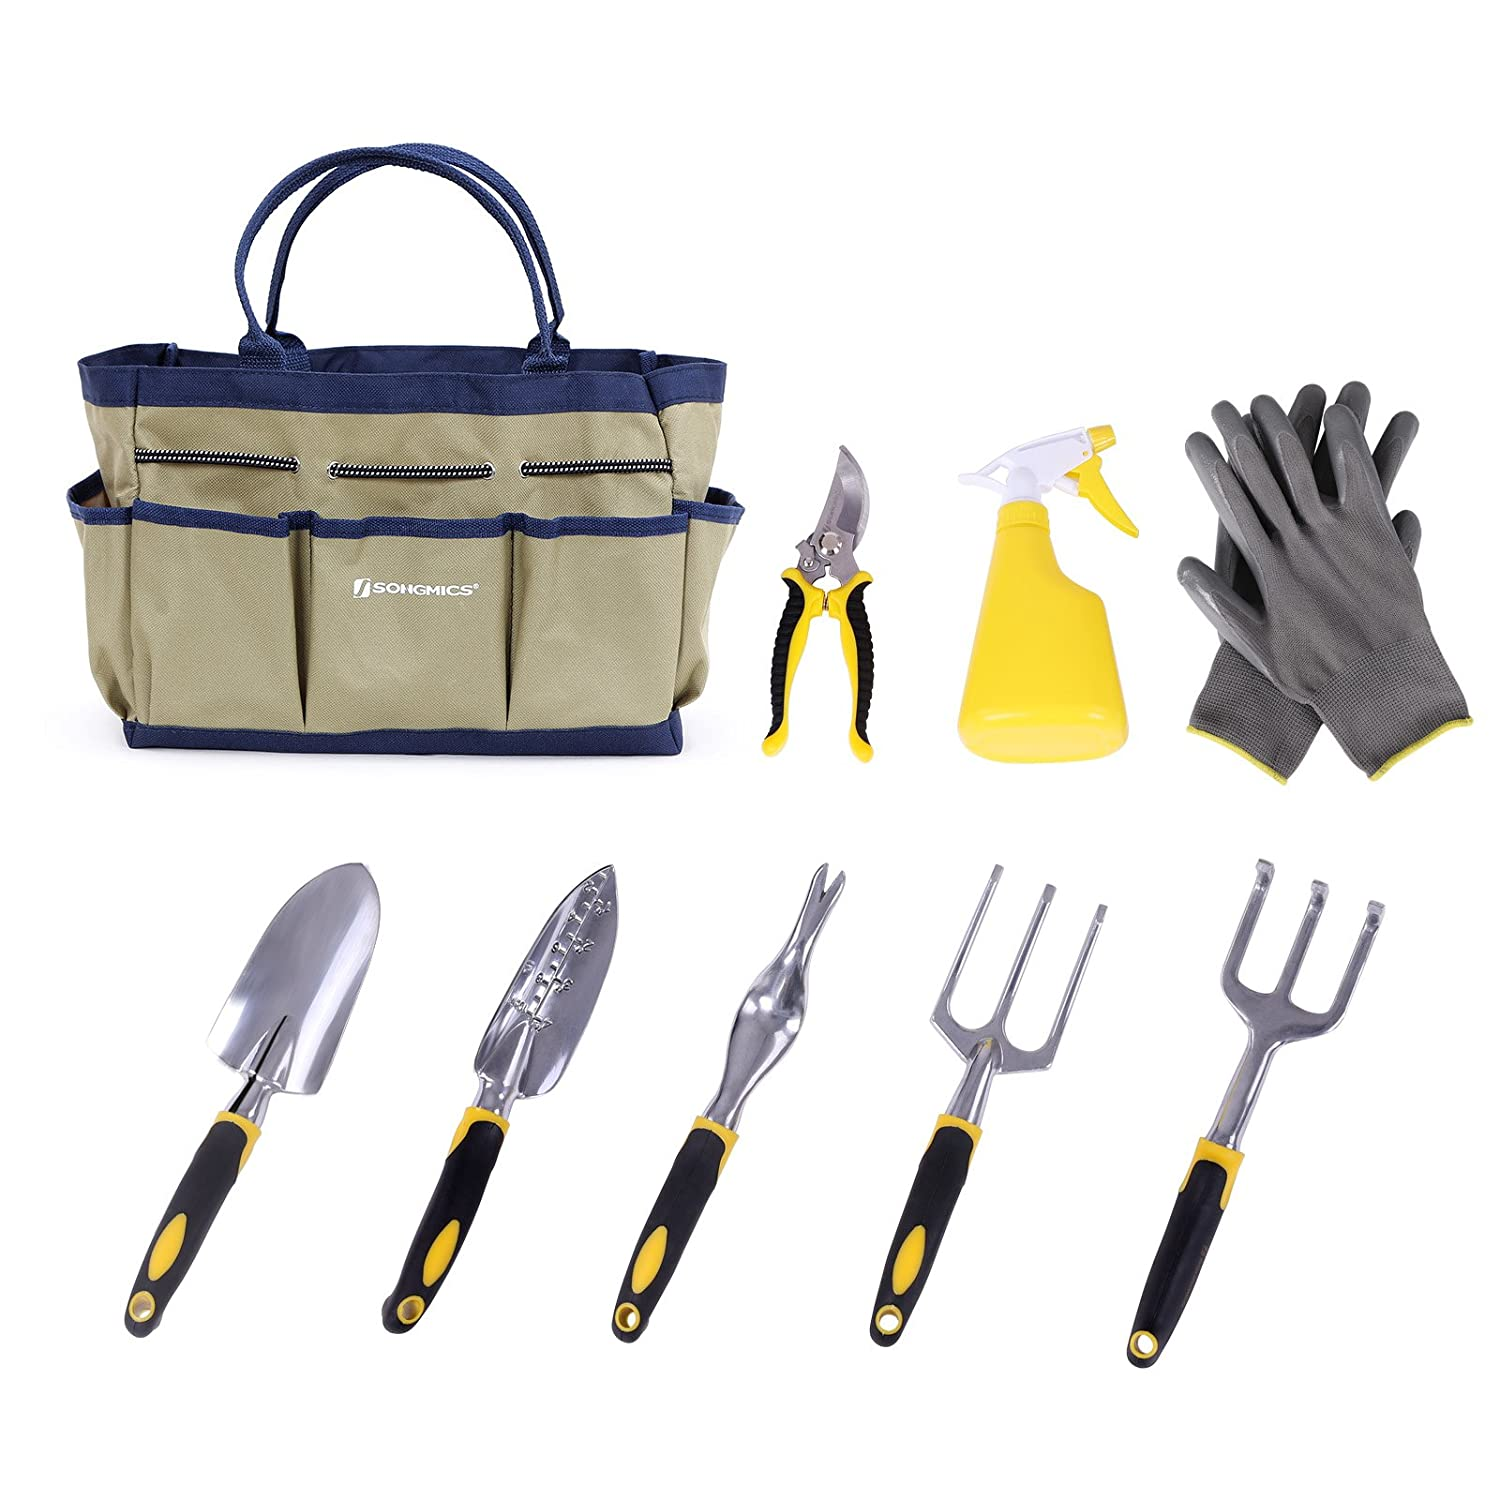 SONGMICS 7 Piece Garden Tool Set